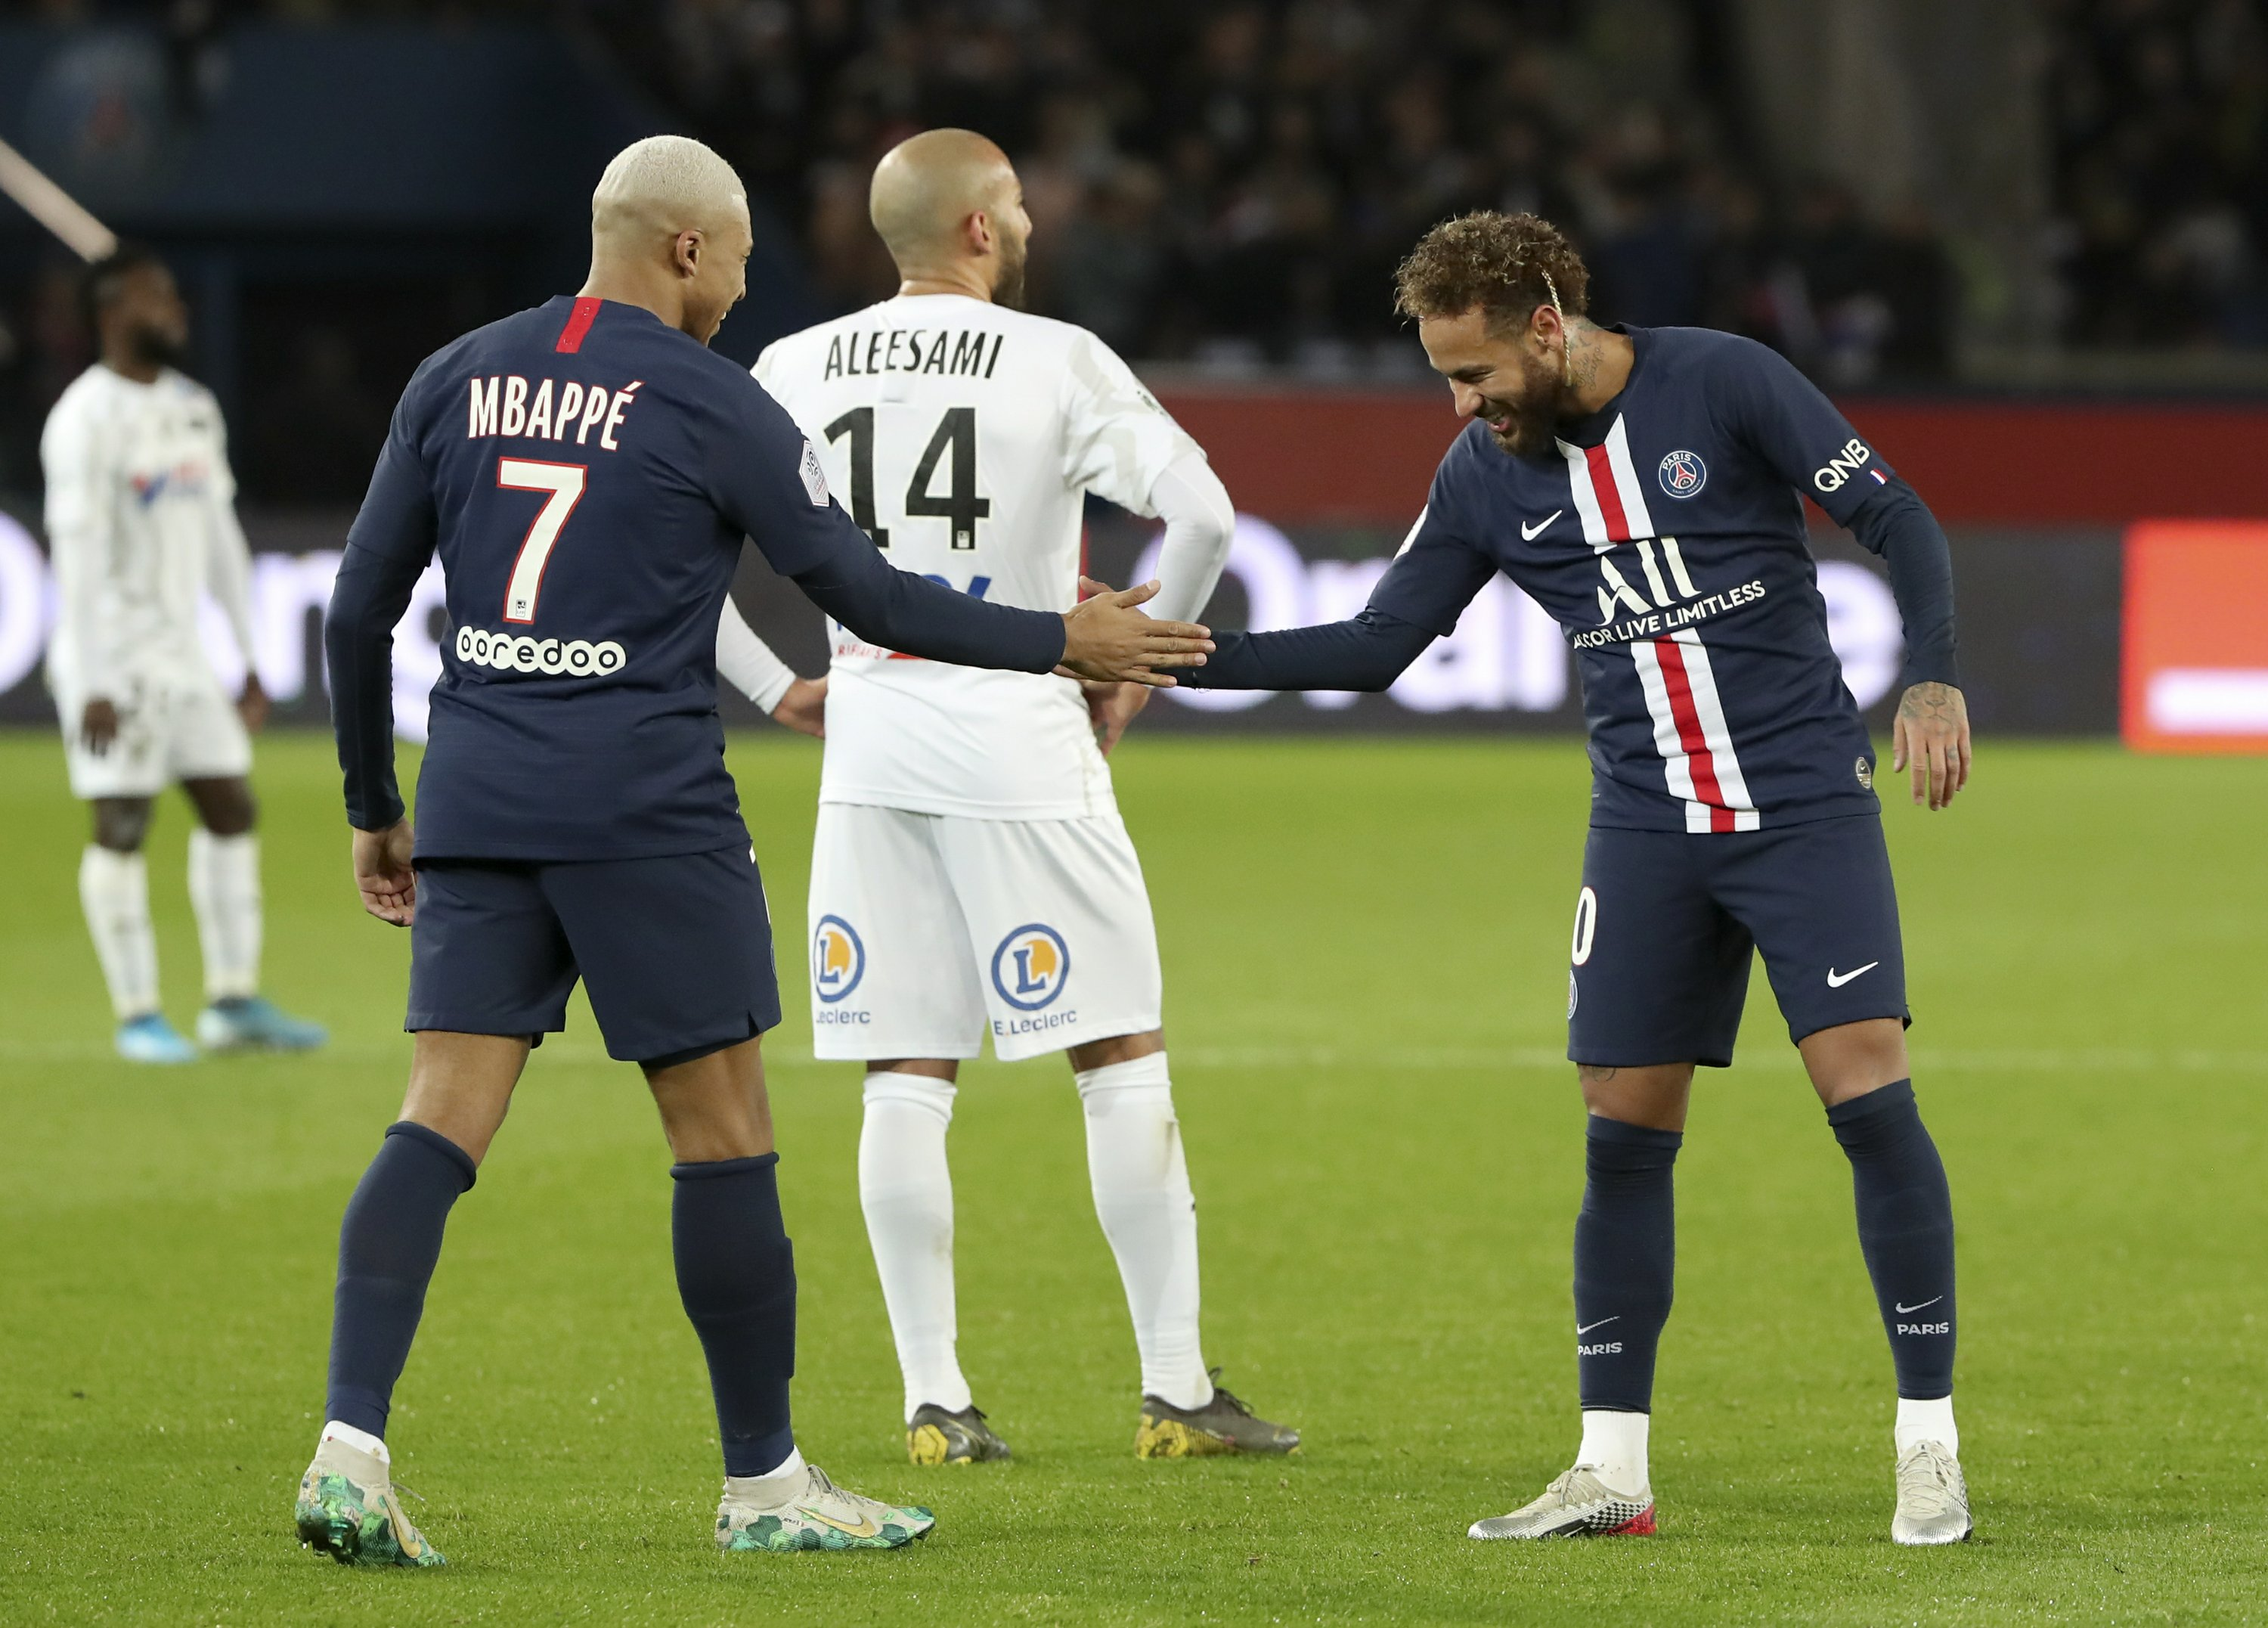 PSG's march to another title helped by rivals' inconsistency